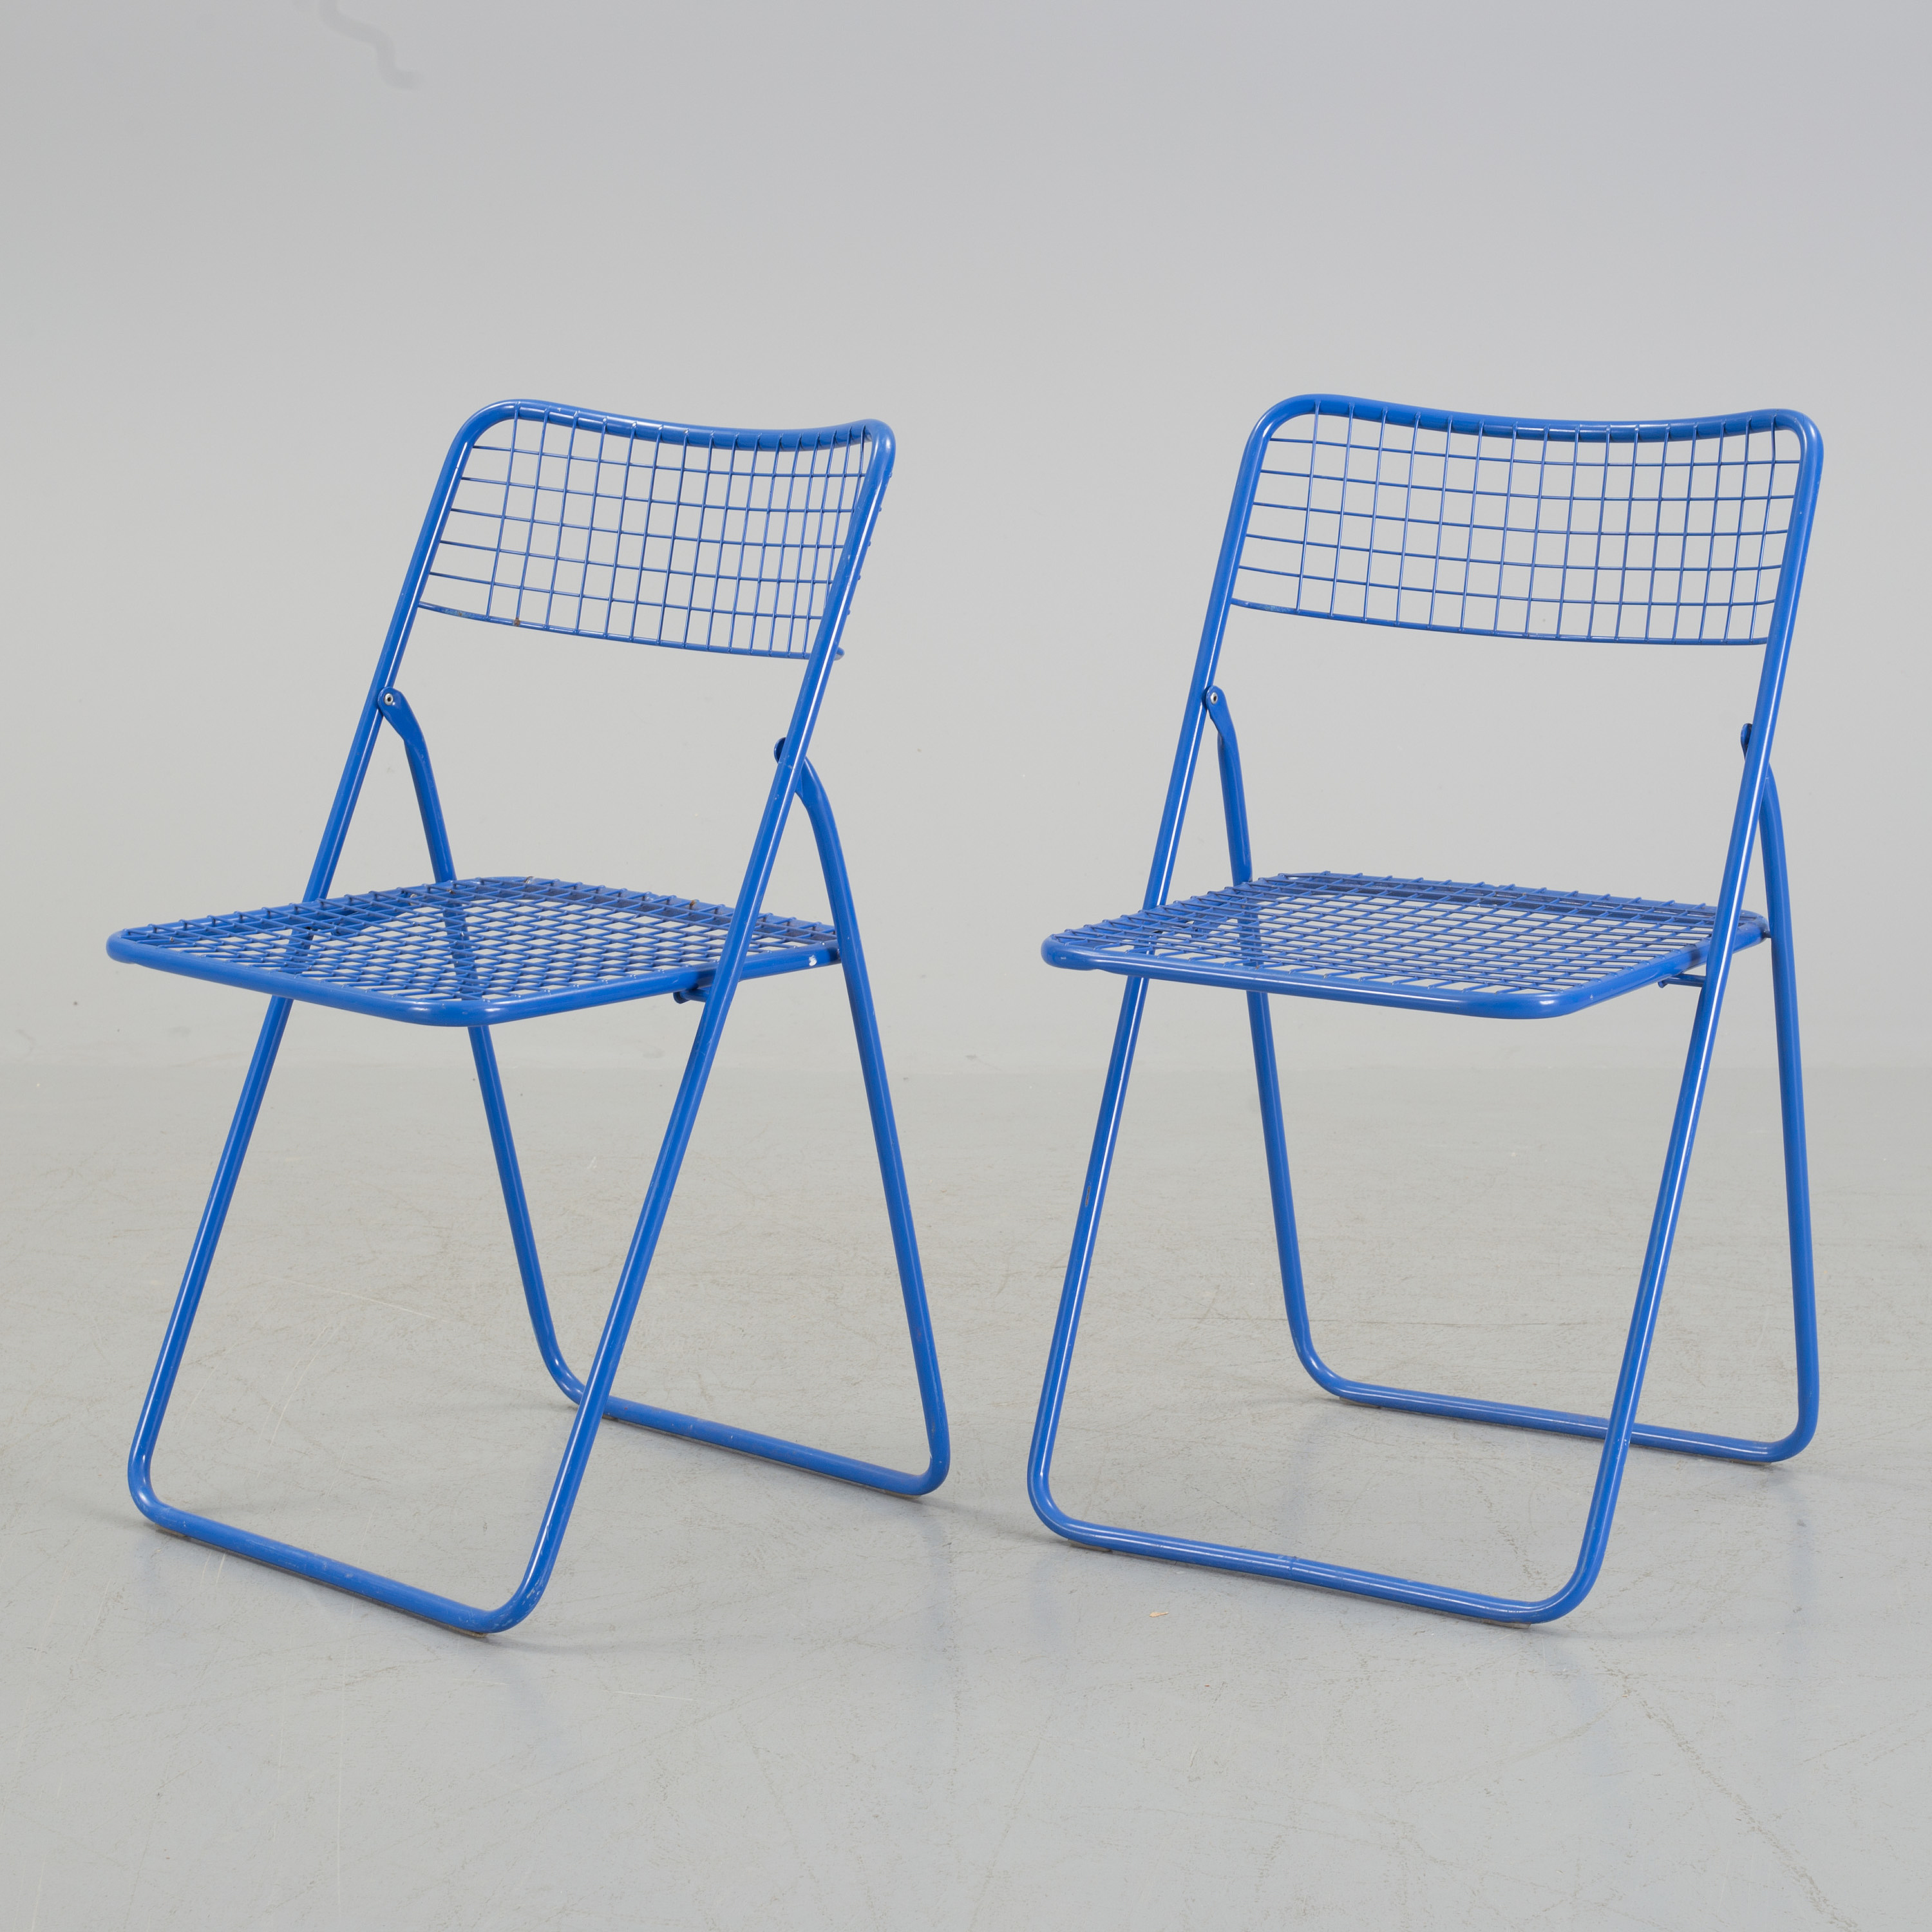 Pleasing Nils Gammelgaard Five Ted Net Metal Folding Chairs From Squirreltailoven Fun Painted Chair Ideas Images Squirreltailovenorg